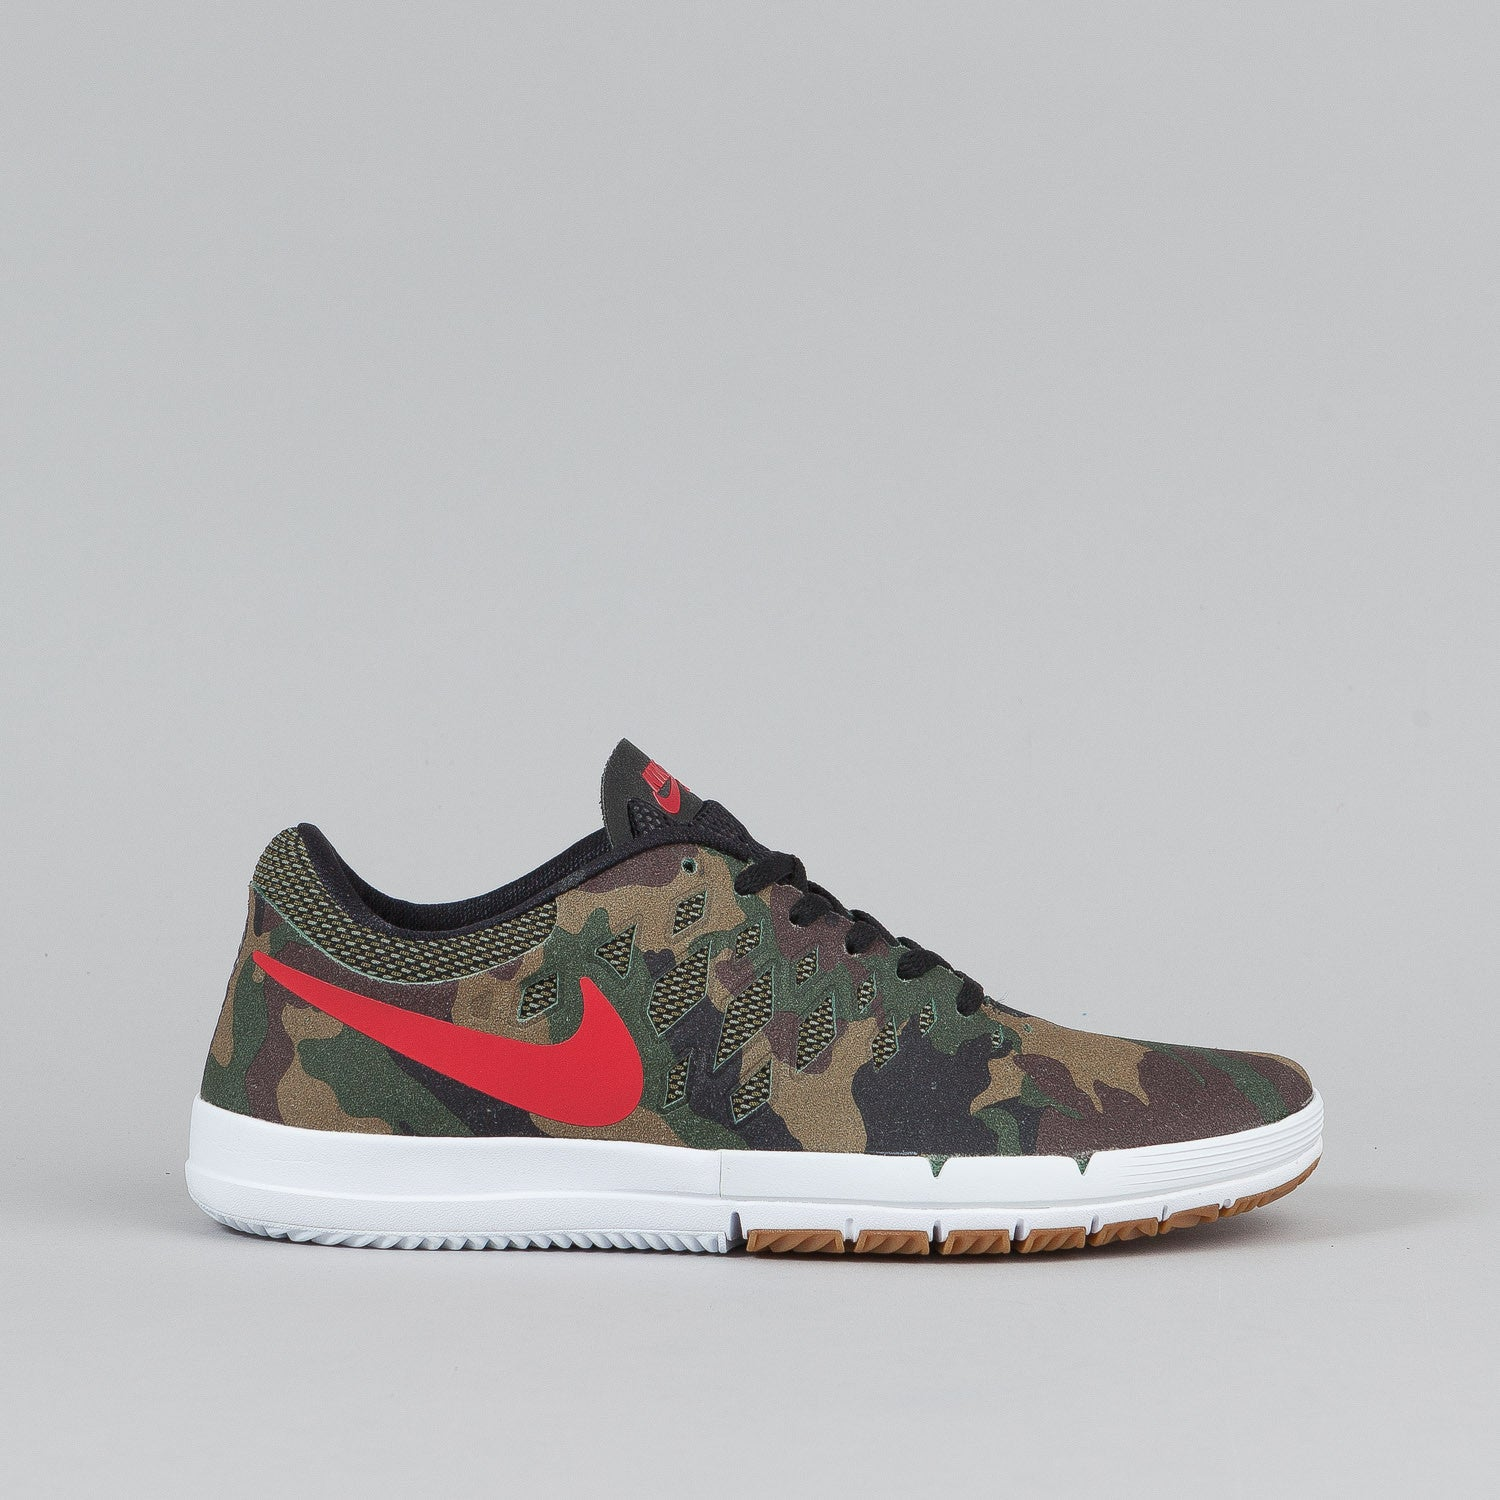 nike sb free shoes premium qs fortress green gym red. Black Bedroom Furniture Sets. Home Design Ideas